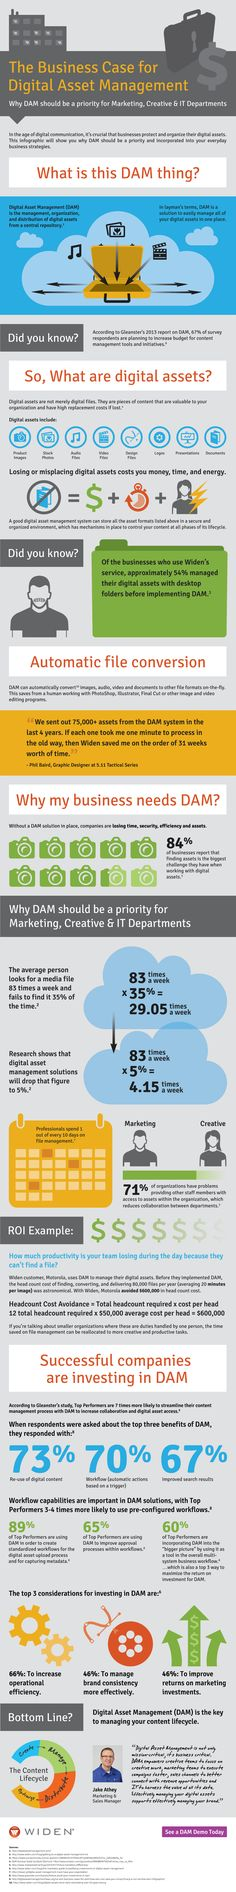 The Business Case For Digital Asset Management   #Infographic #Business #DAM